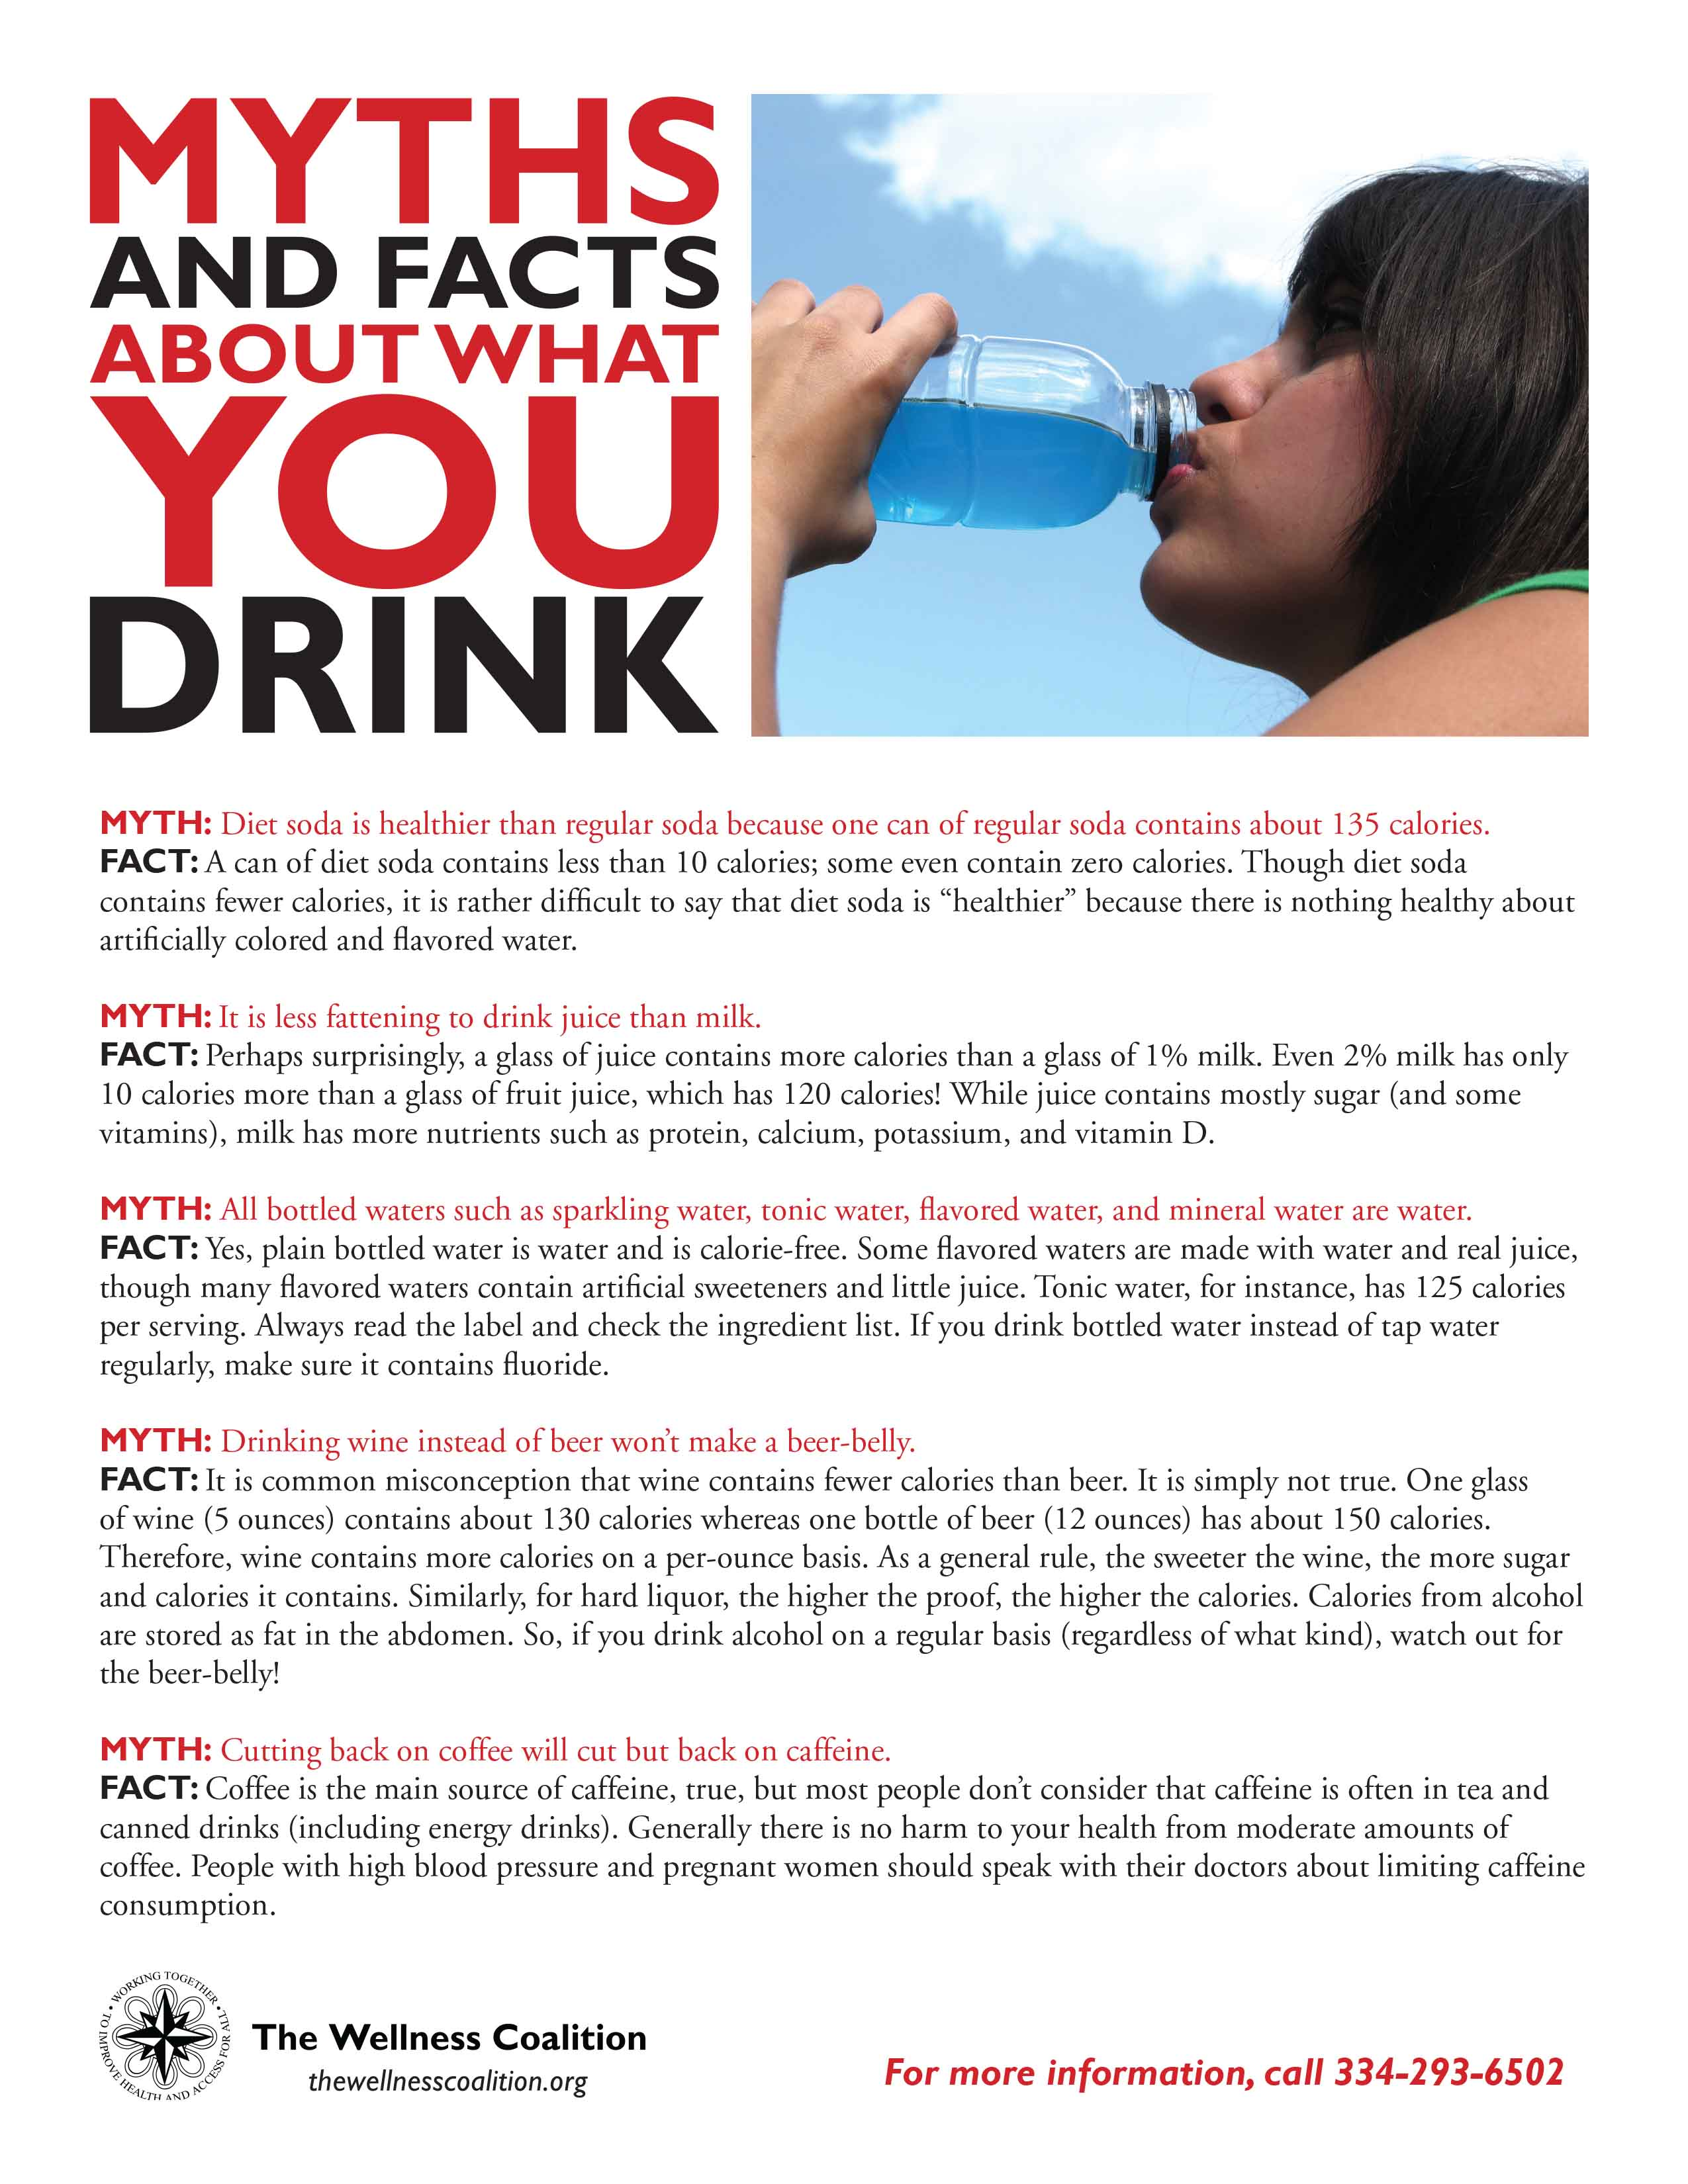 Myths and Facts about What You Drink